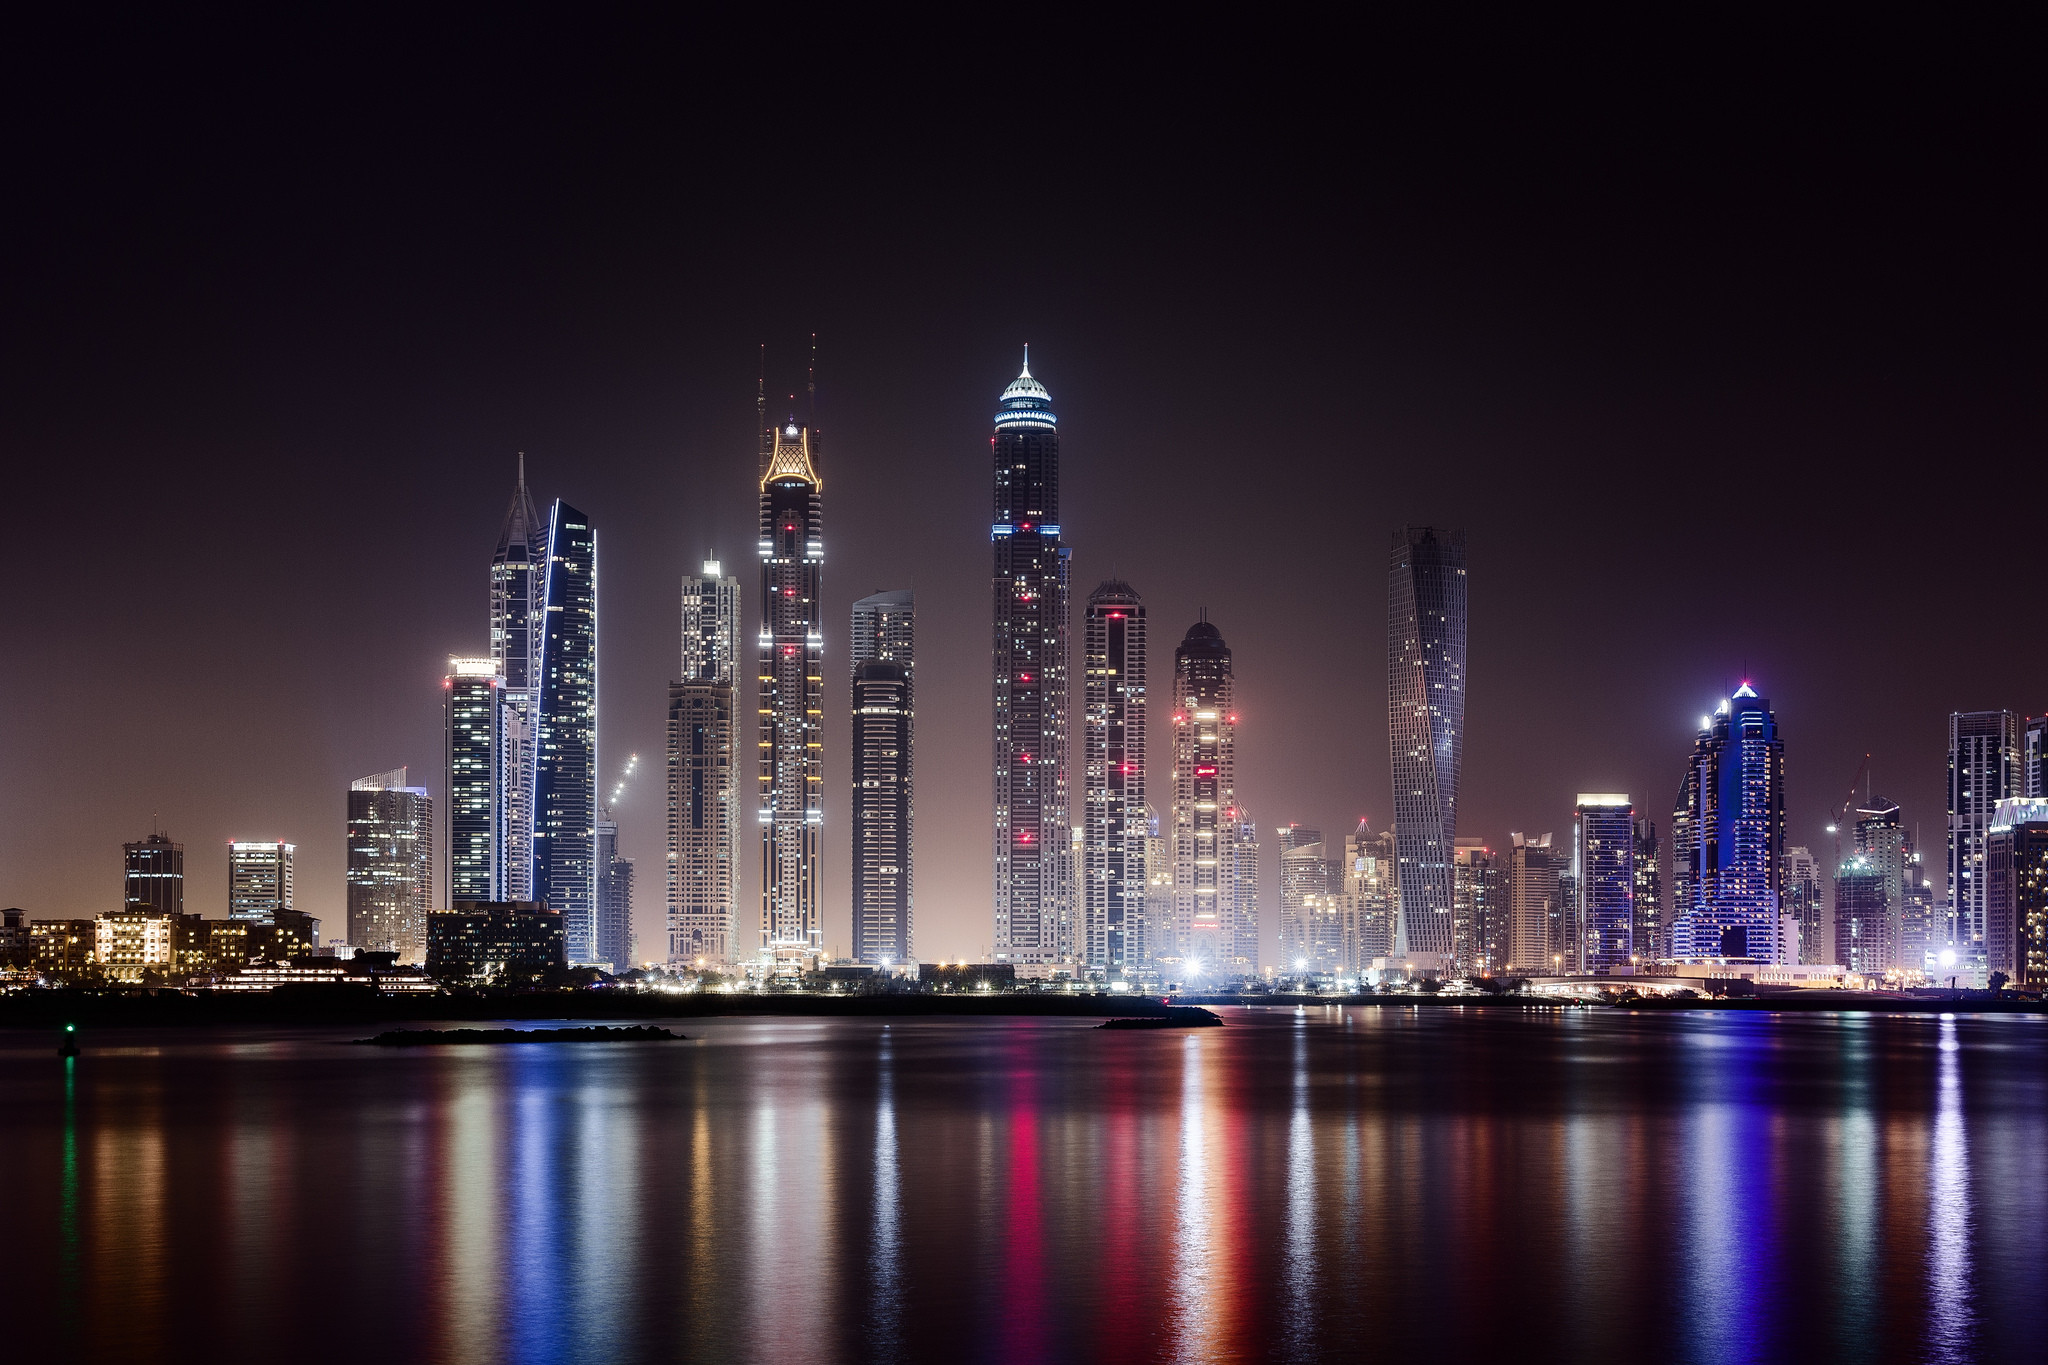 … city, Dubai, city night wallpaper,hd, skyscraper, lights